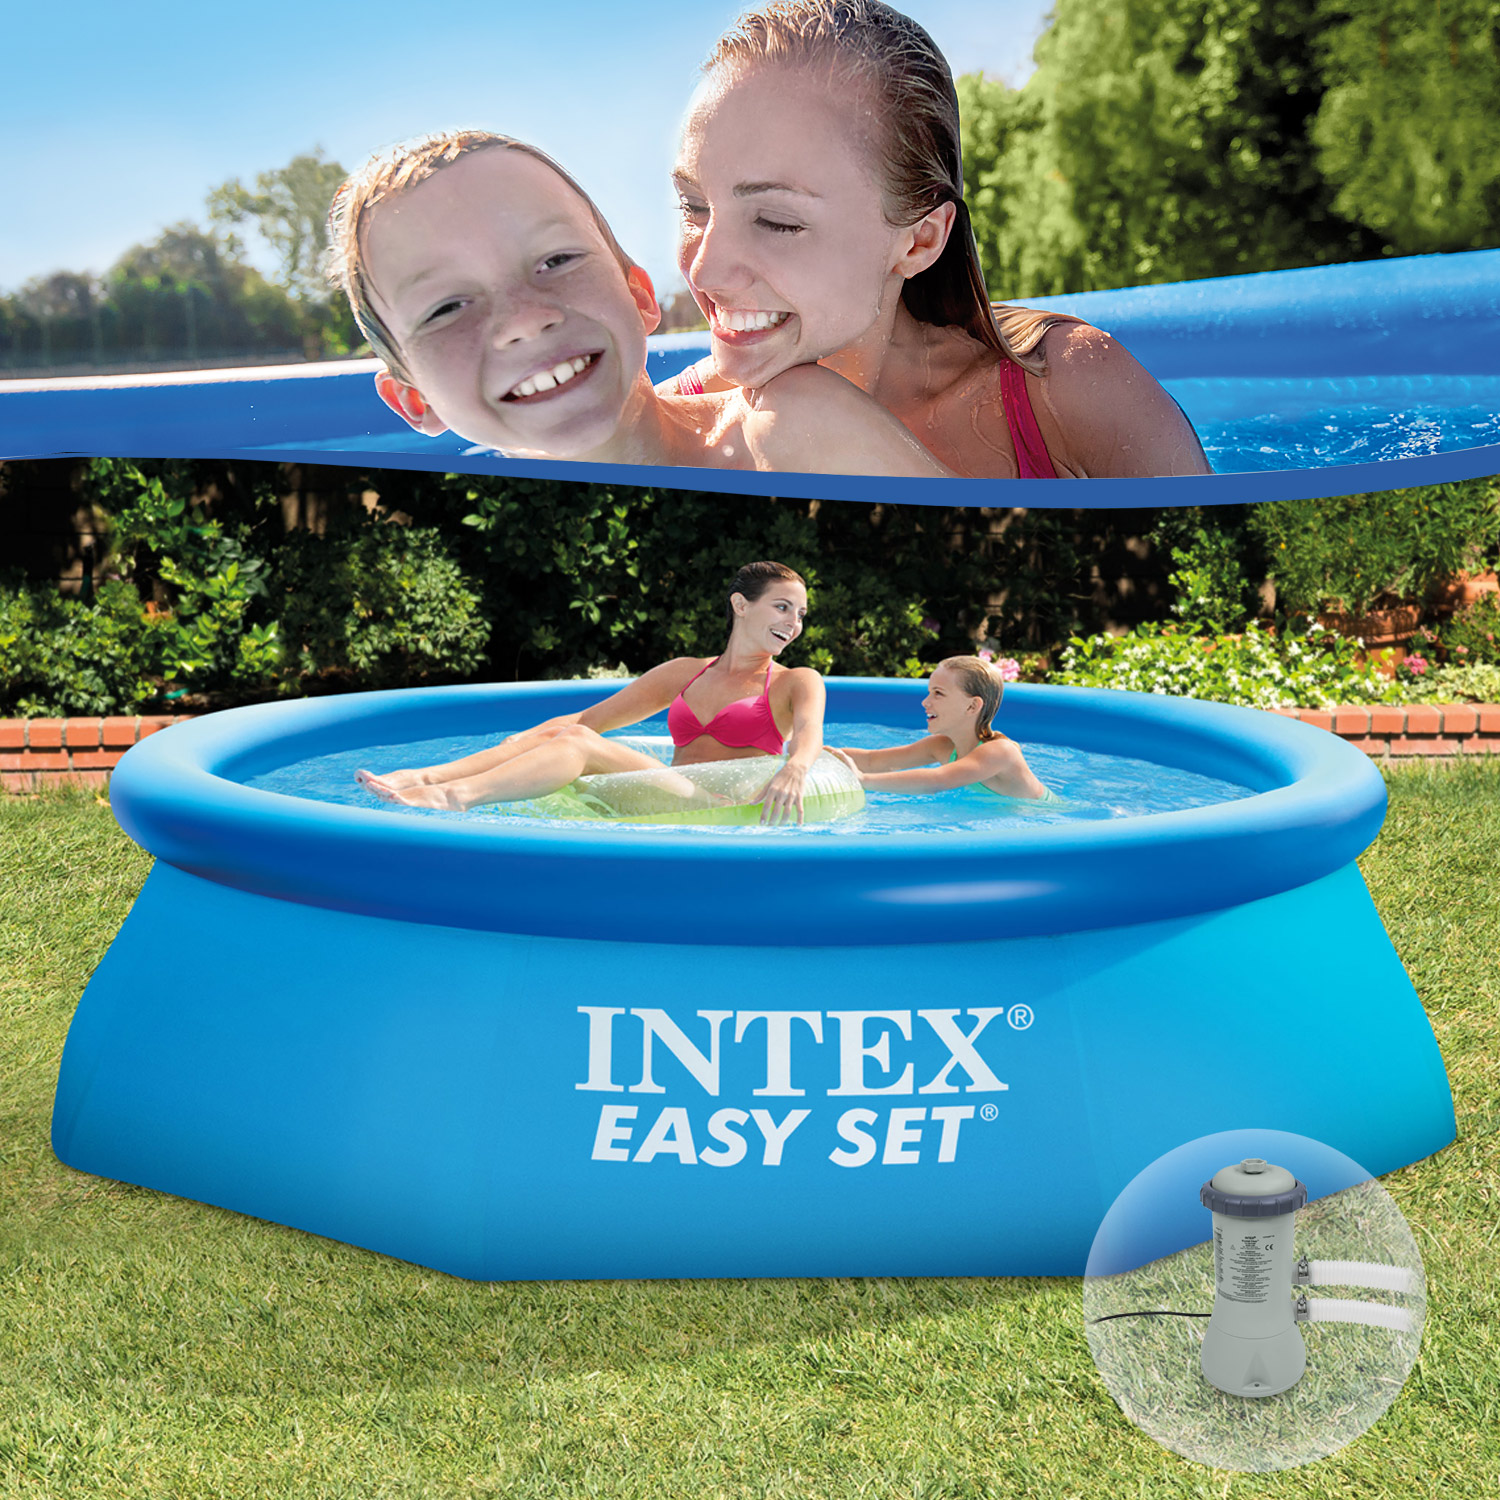 intex 305x76 cm swimming pool schwimmbecken schwimmbad planschbecken pumpe 28122 ebay. Black Bedroom Furniture Sets. Home Design Ideas